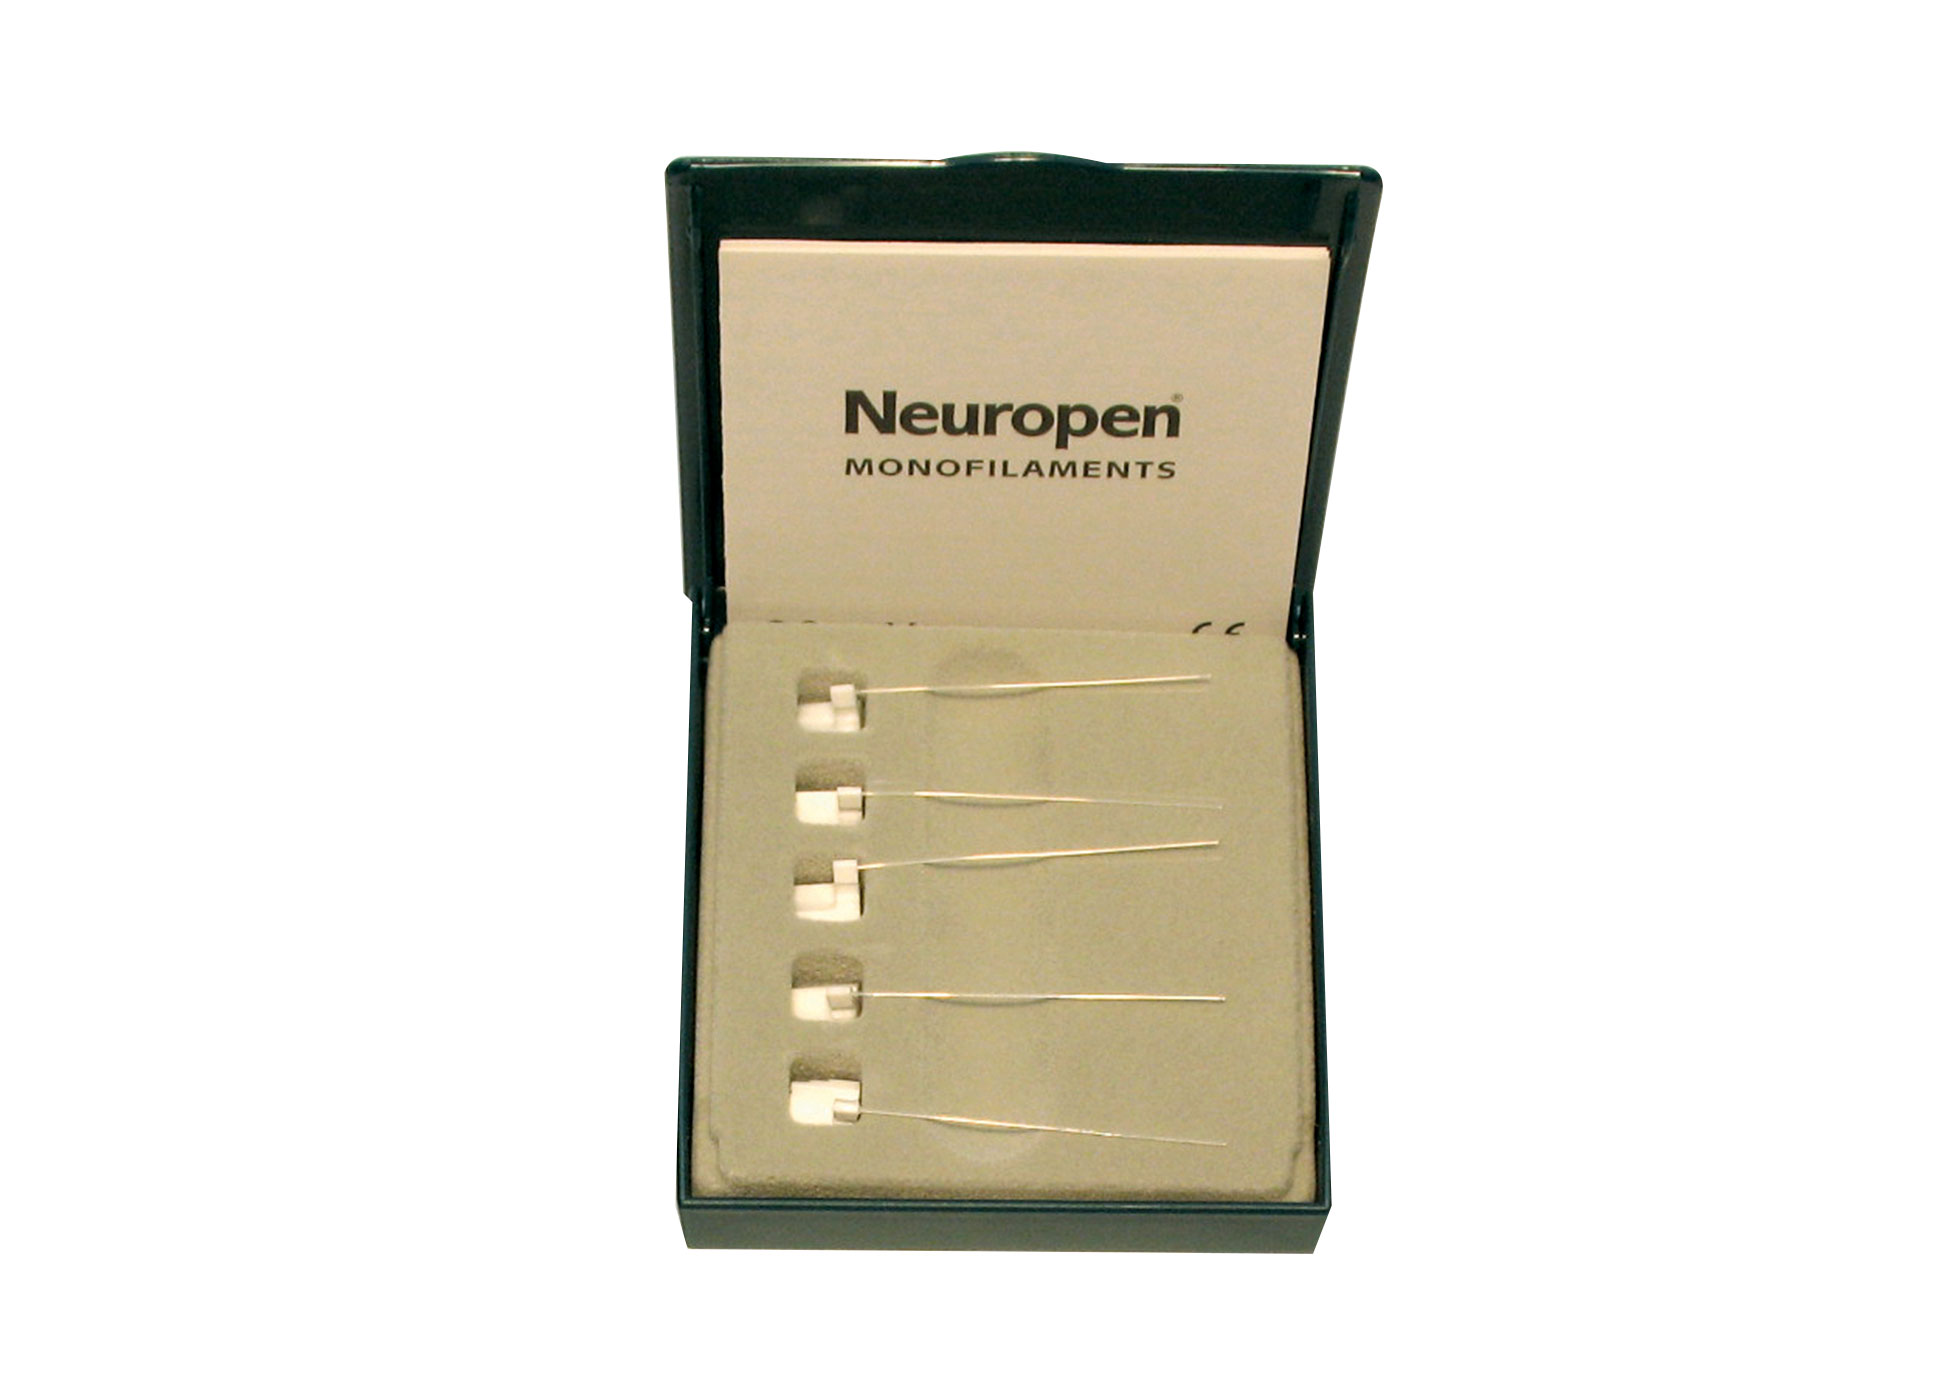 Neuropen Monofilament TIPS - Pack of 5